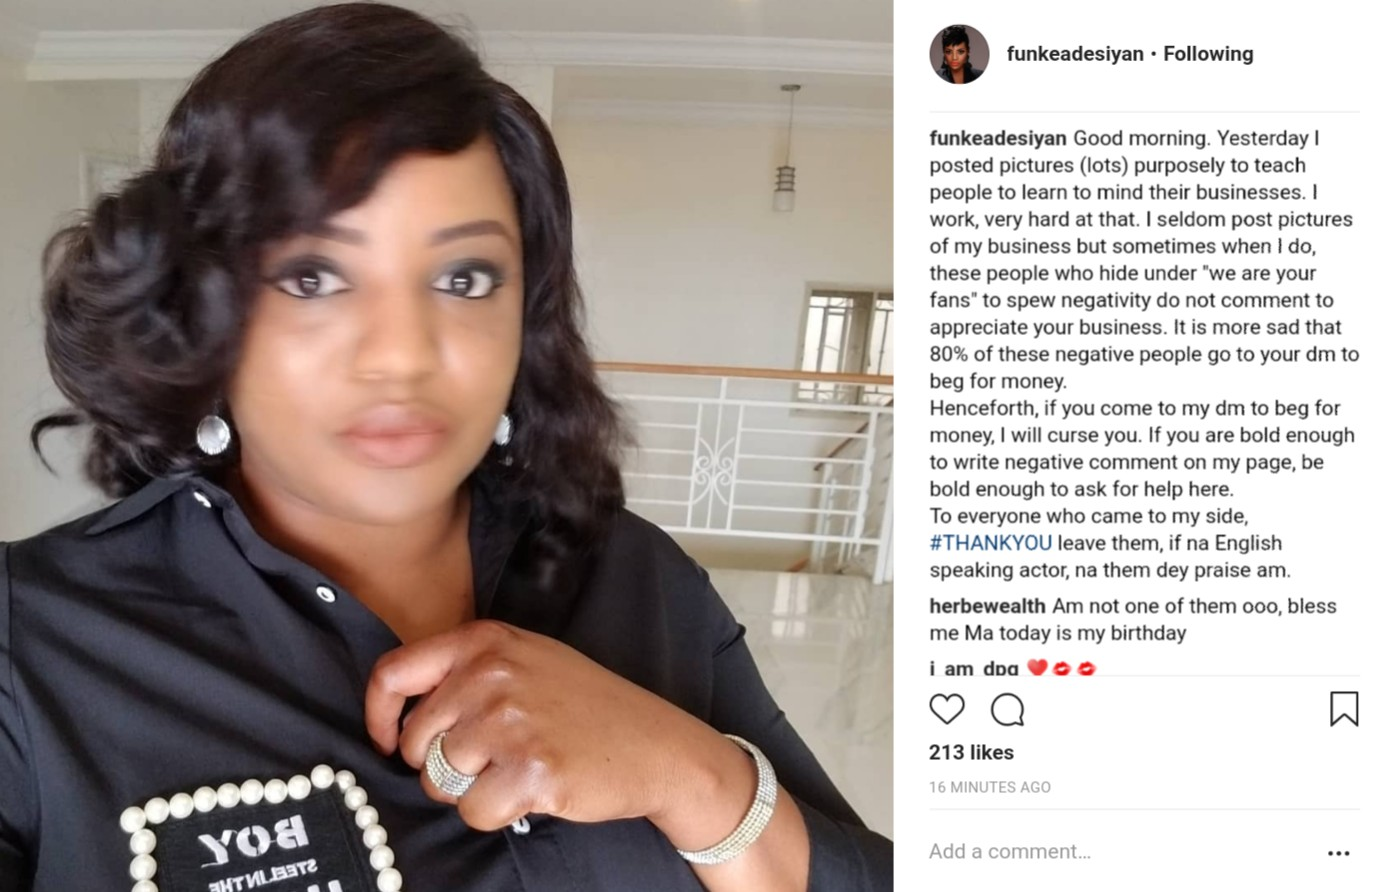 Funke Adesiyan To Curse Those Who Come To Her DM To Beg For Money (2)